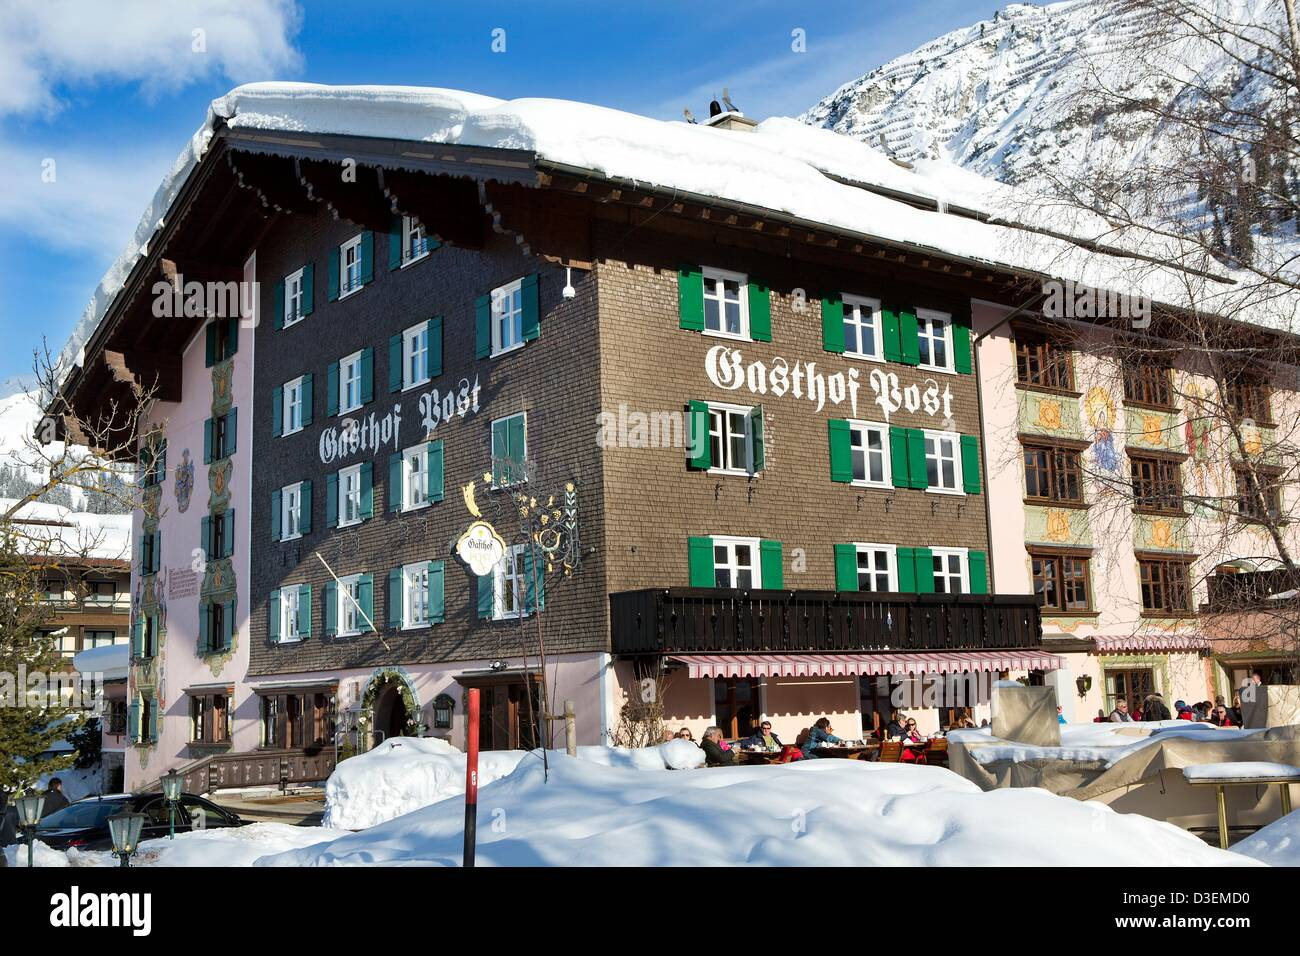 Gasthof Post High Resolution Stock Photography And Images Alamy